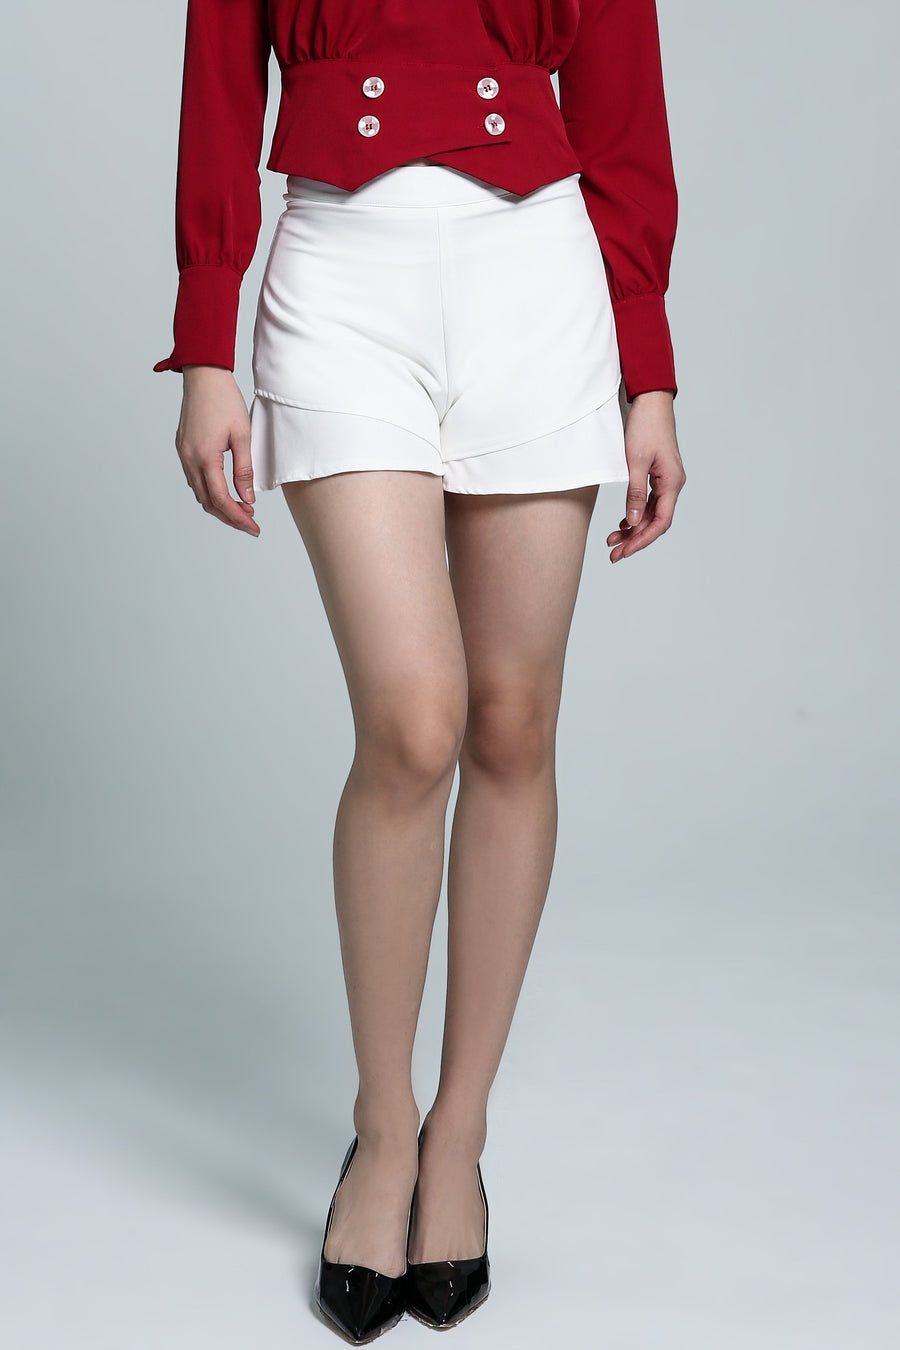 Plain Skirt Pant 1820 - Ample Couture